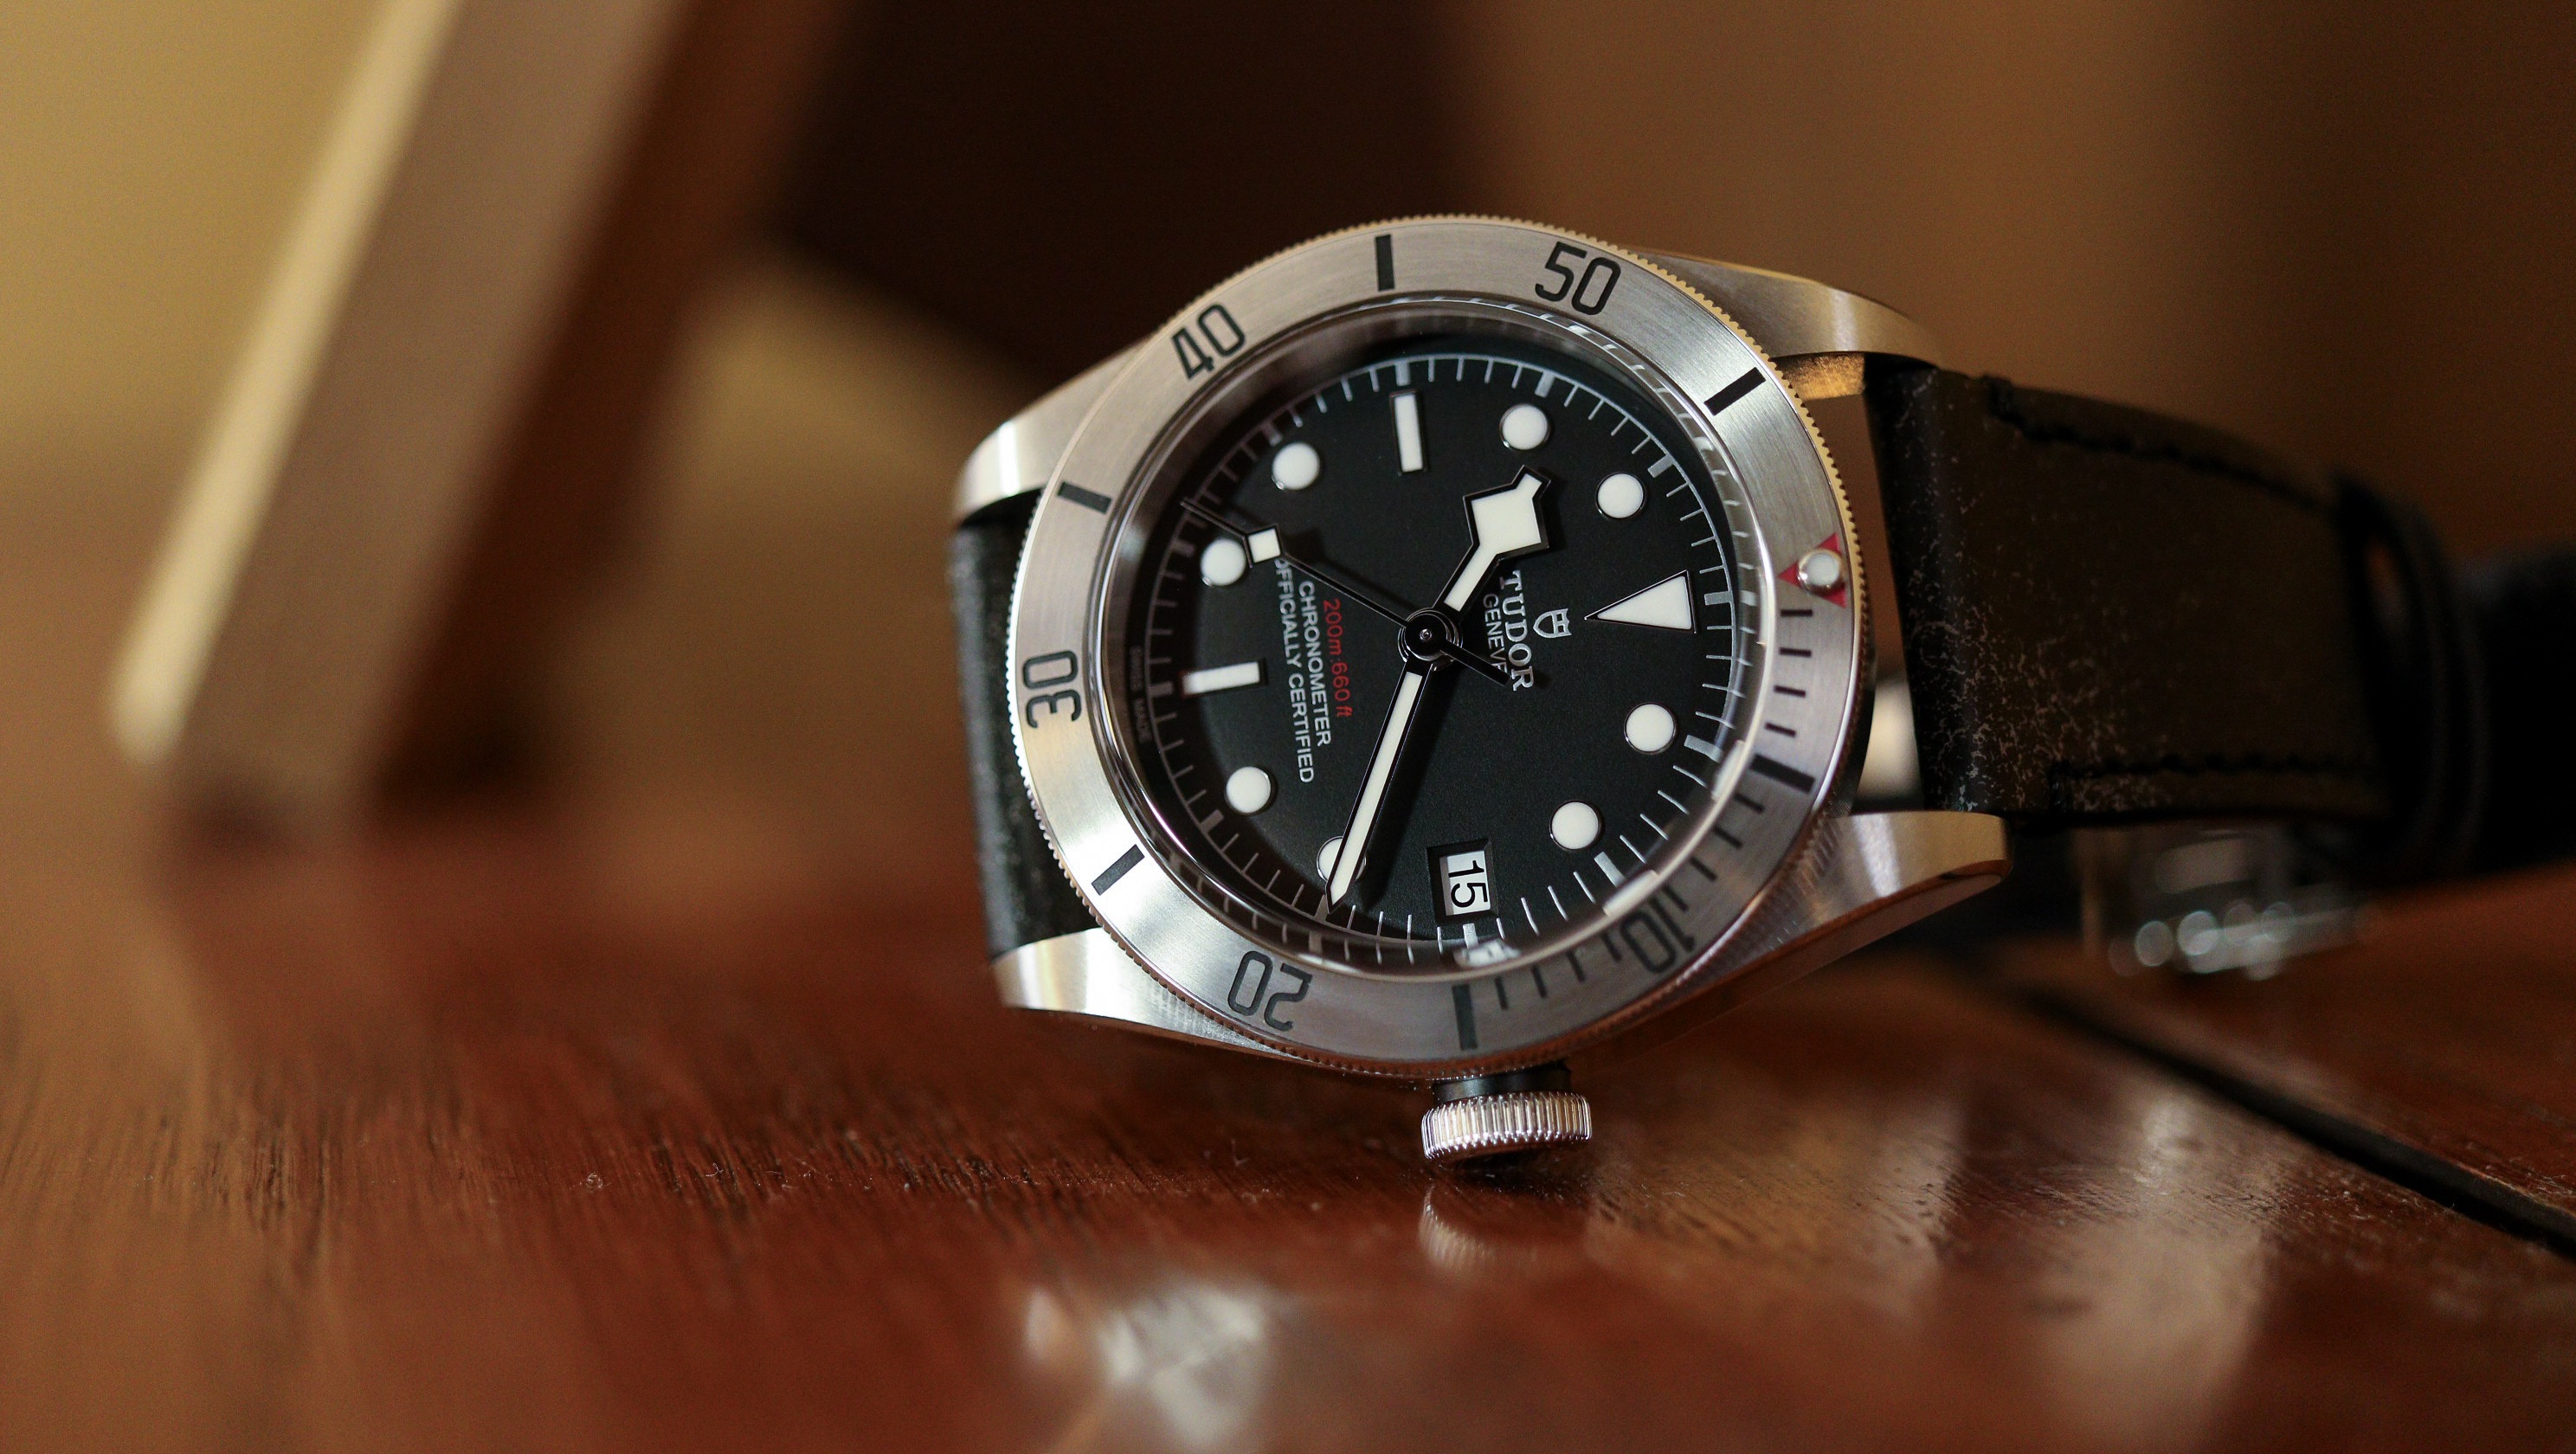 Tudor Black Bay Steel | Hands On Watch Review - WatchReport com